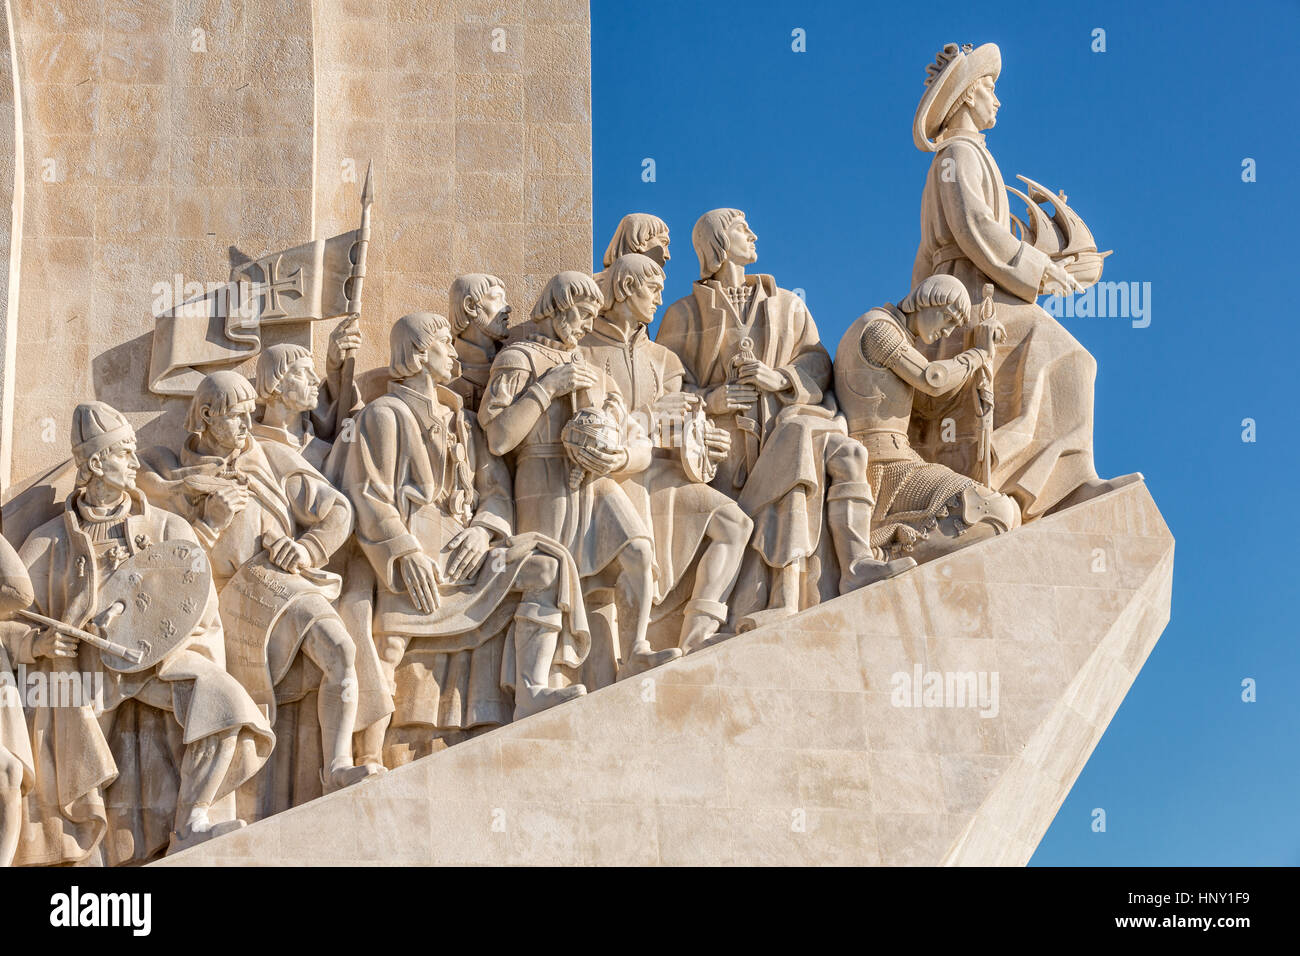 Monument to the Discoveries, Padrao dos Descobrimentos, Belem, Lisbon, Portugal Stock Photo